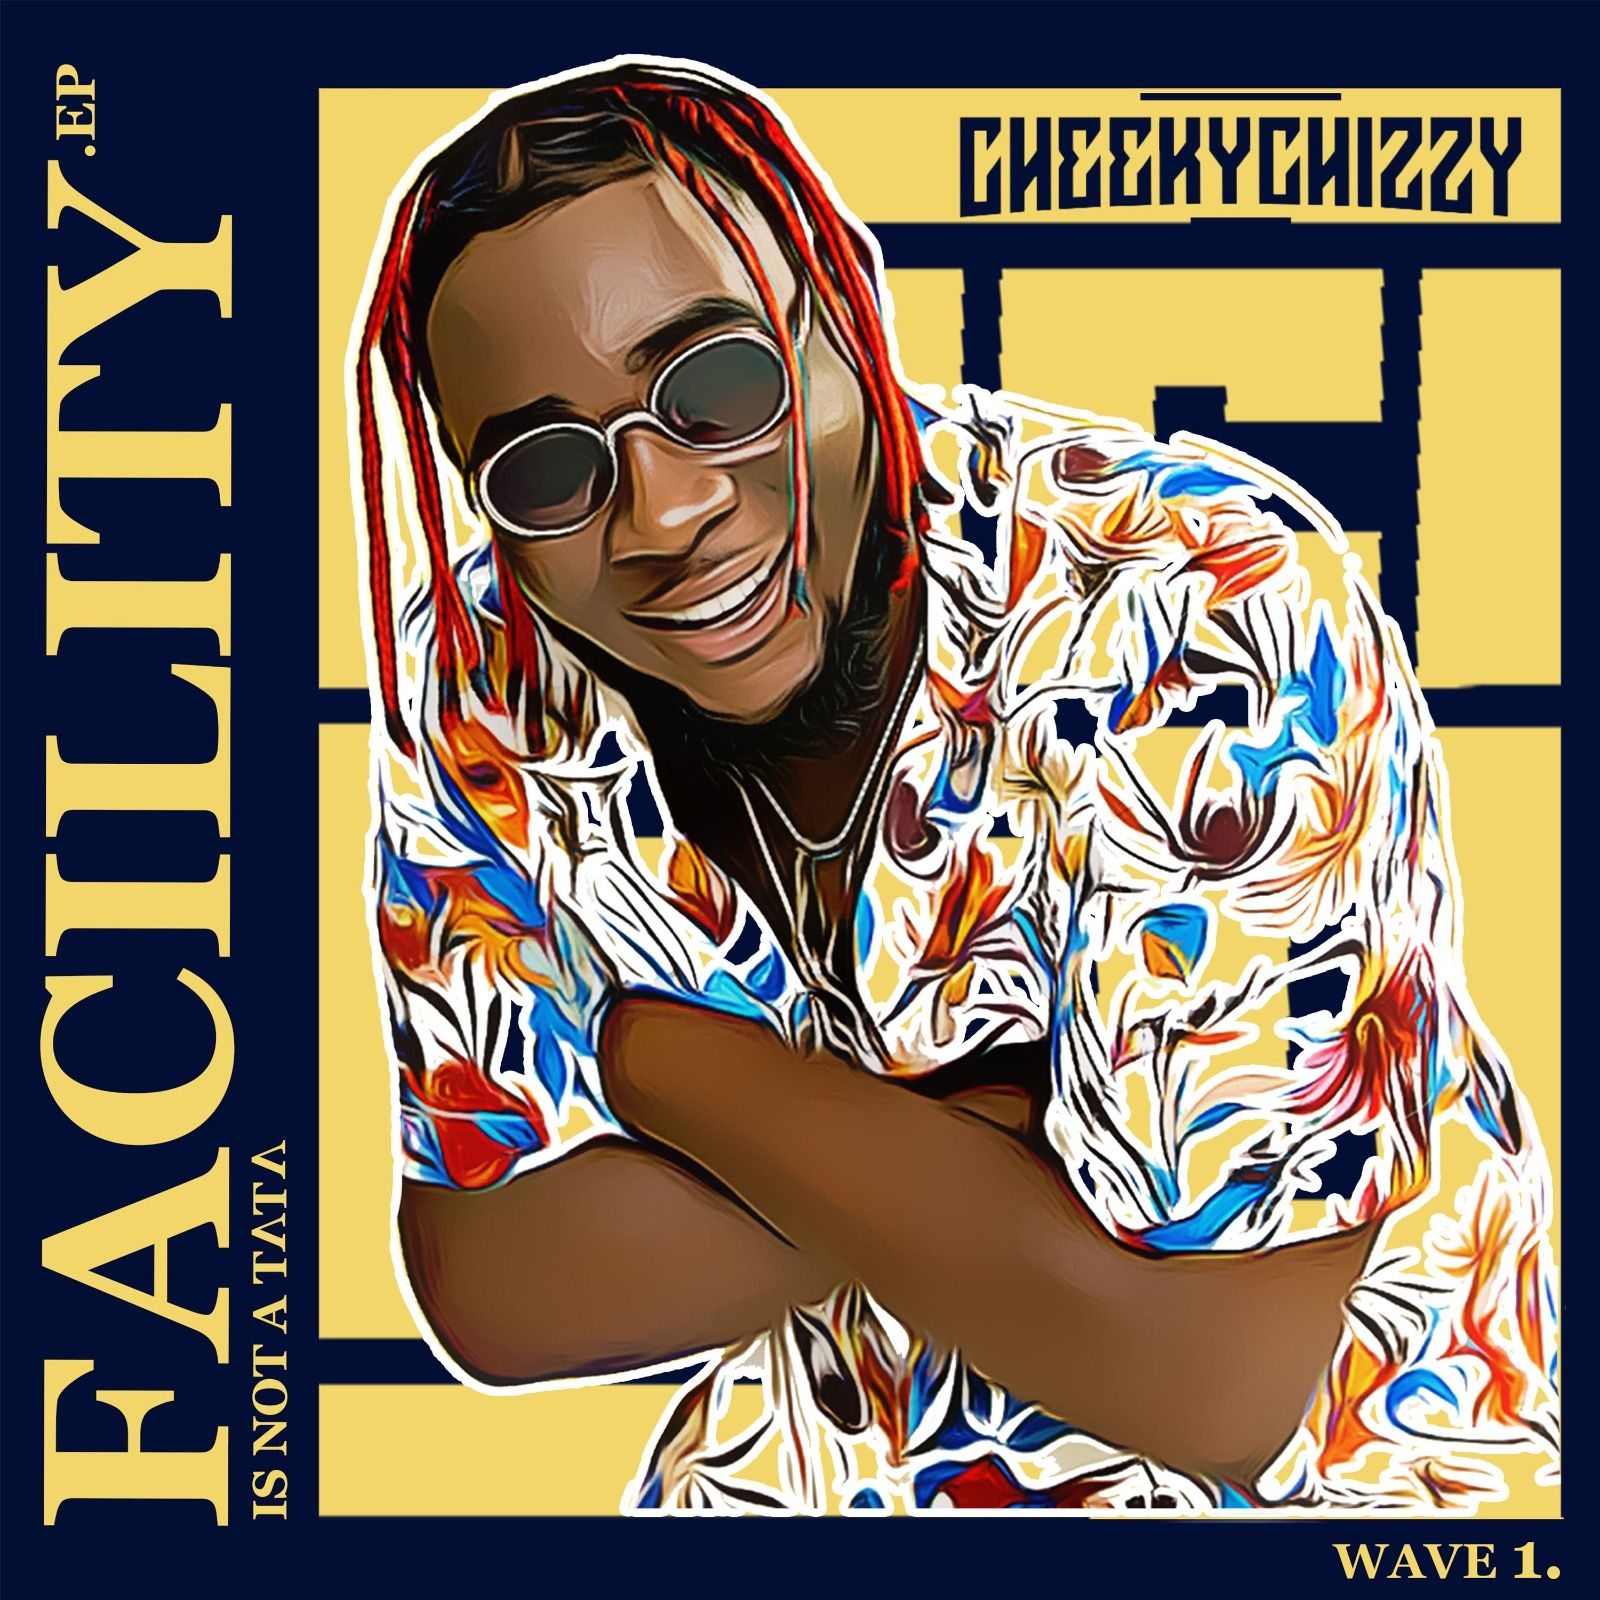 Cheekychizzy Ft. Slimcase & Ice Prince - Facility (Explicit Version)